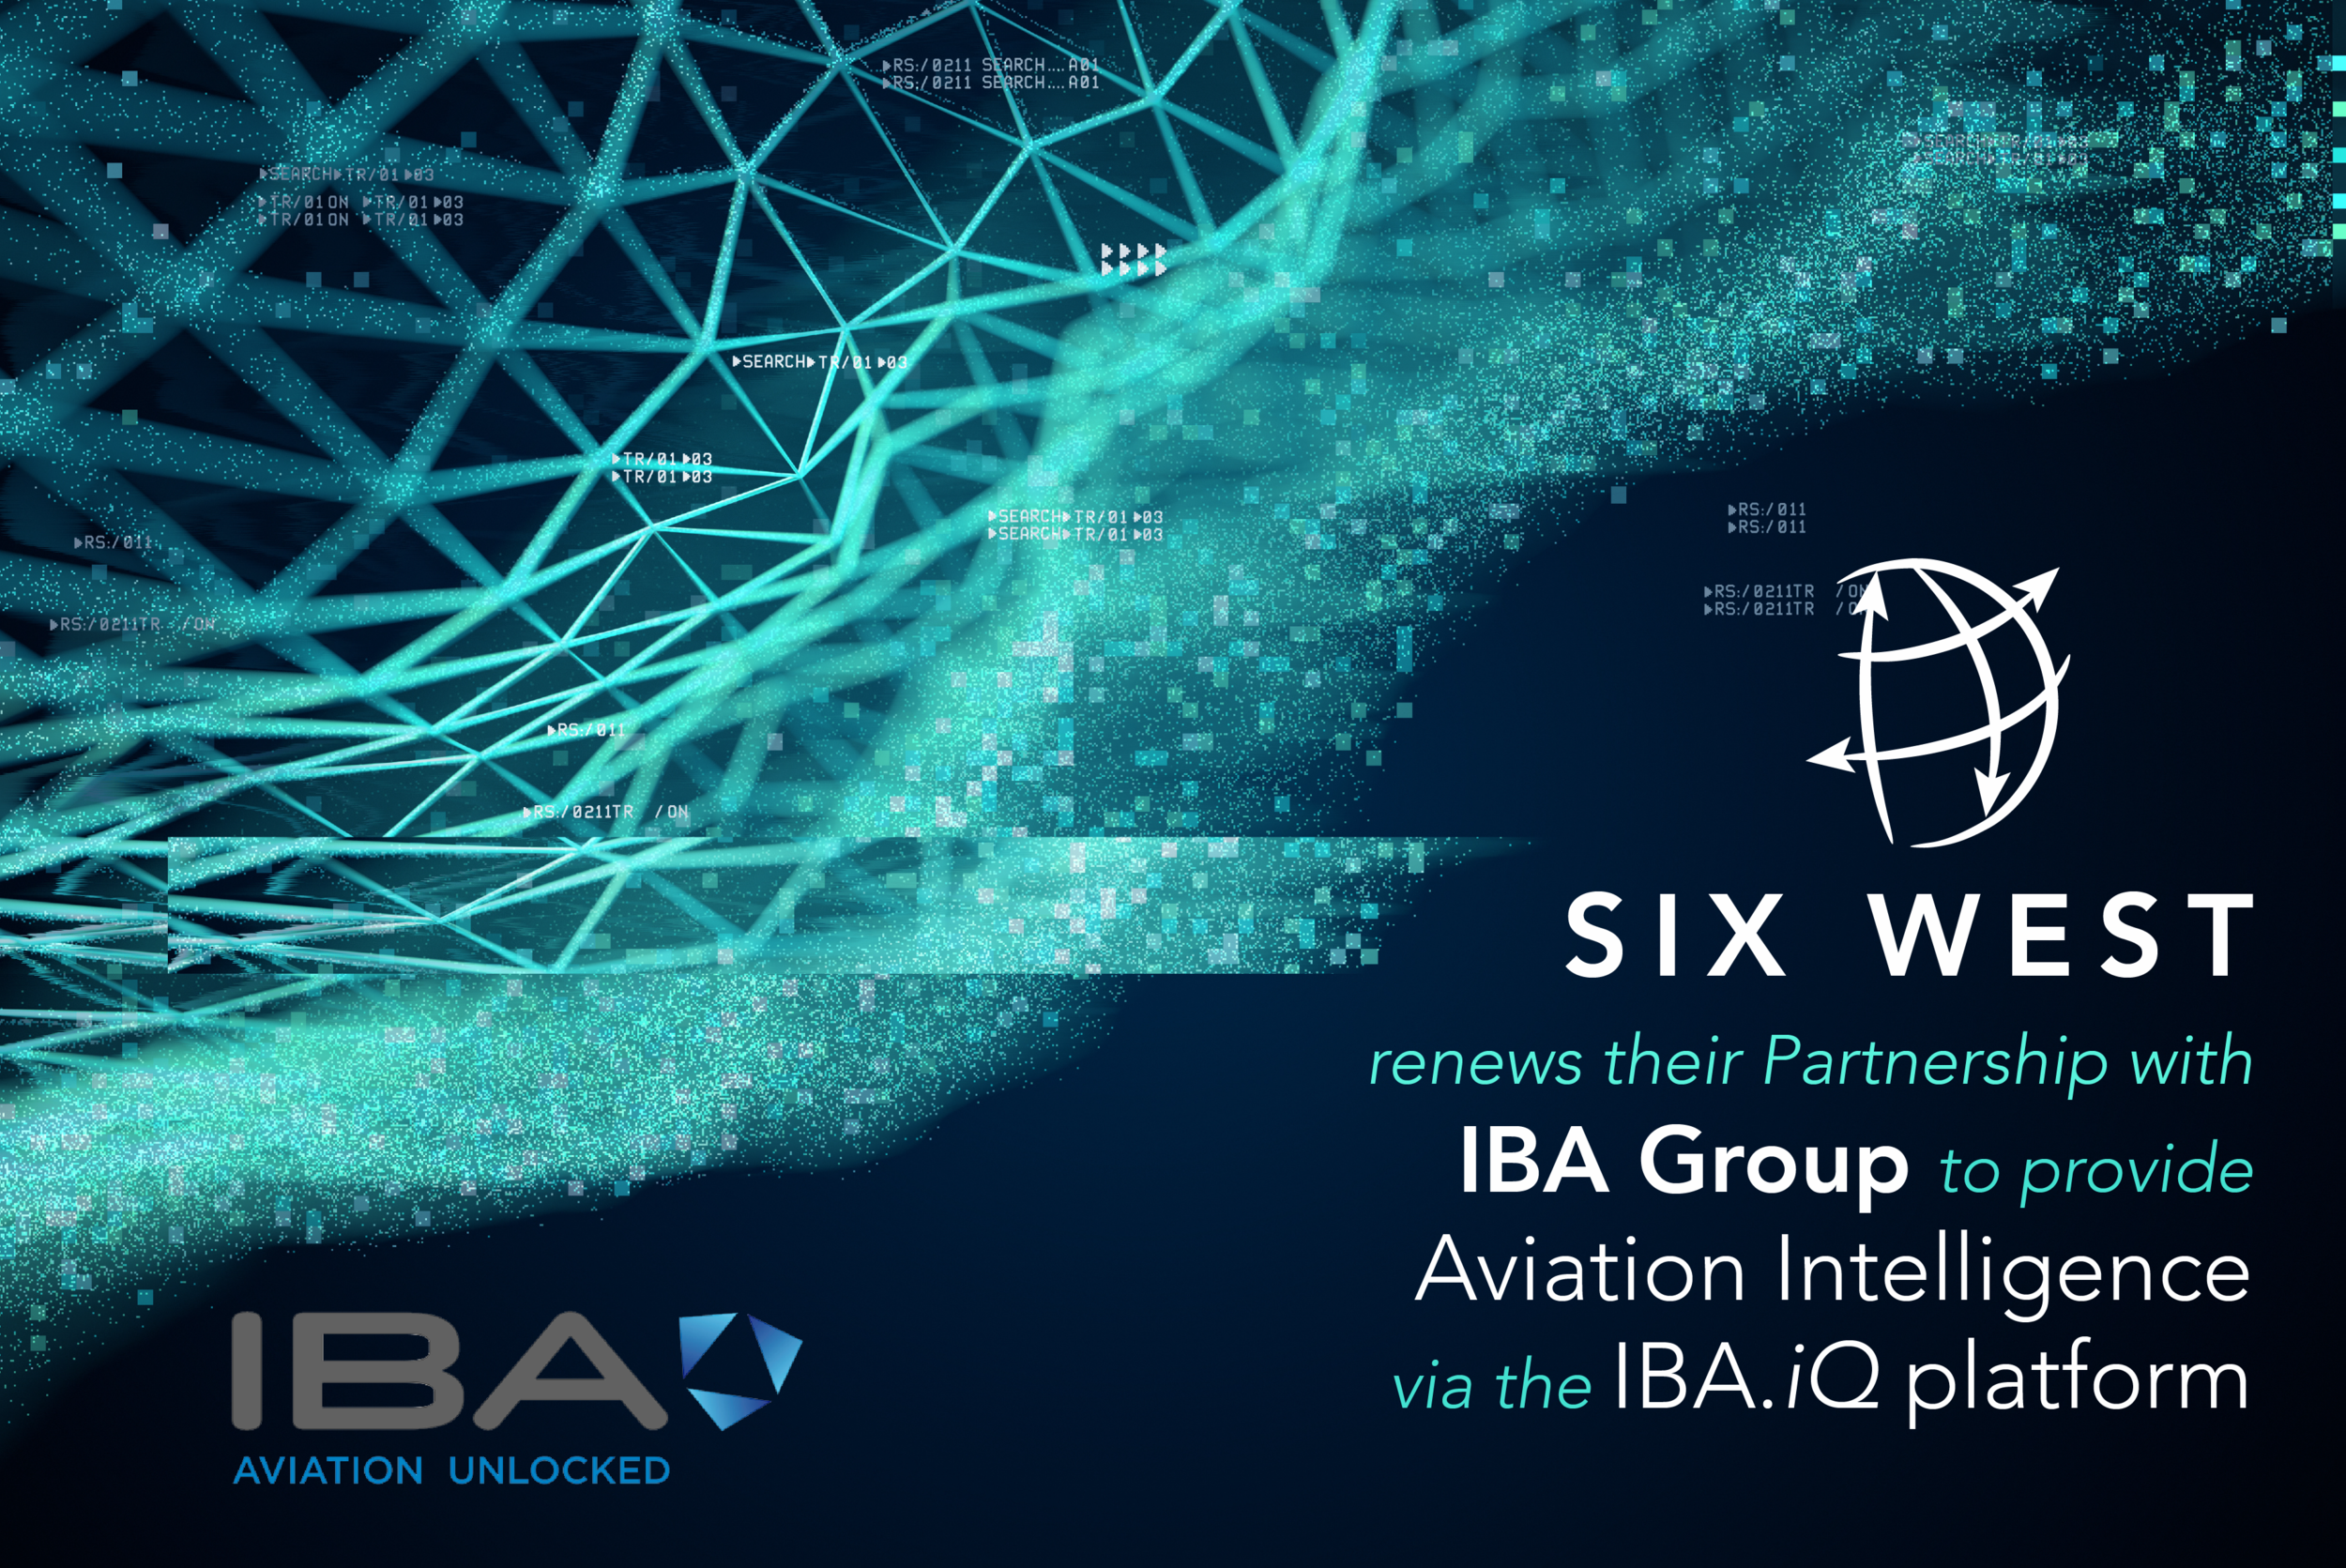 22 May 2019 IBA Announcement